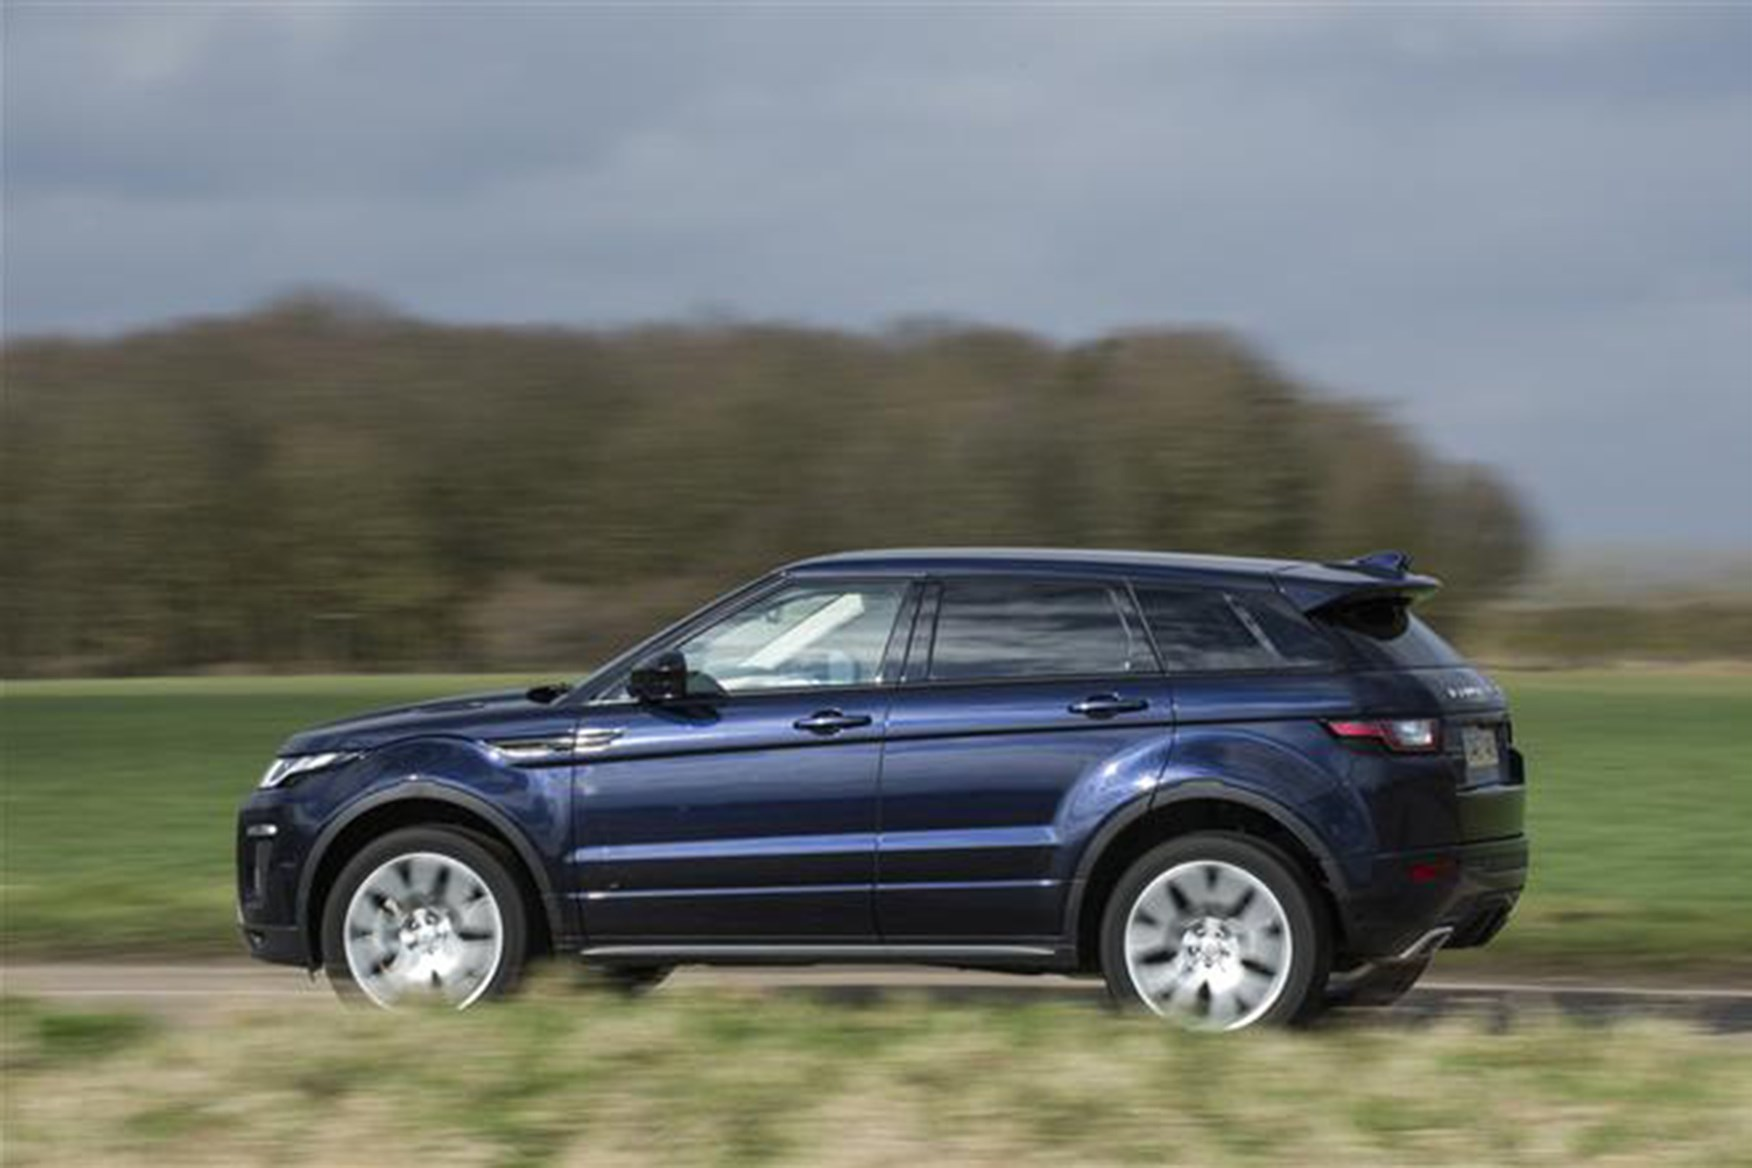 Range Rover Evoque long-term test